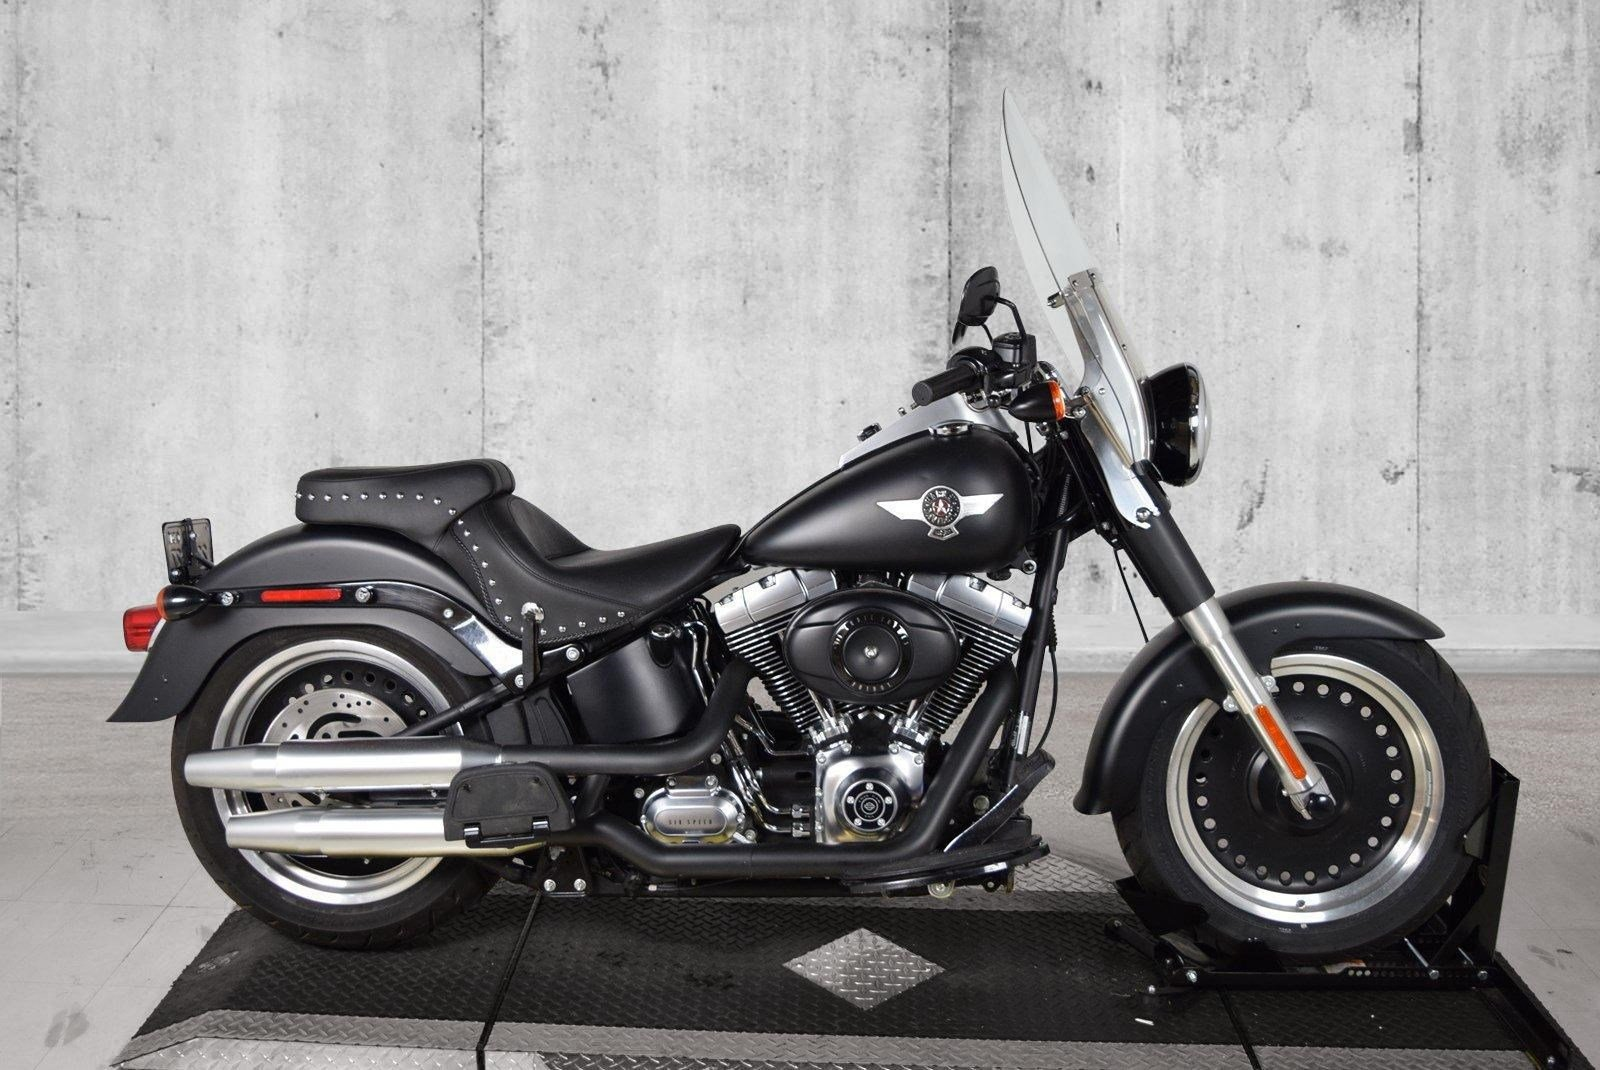 Pre-Owned 2010 Harley-Davidson Softail Fat Boy Lo FLSTFB